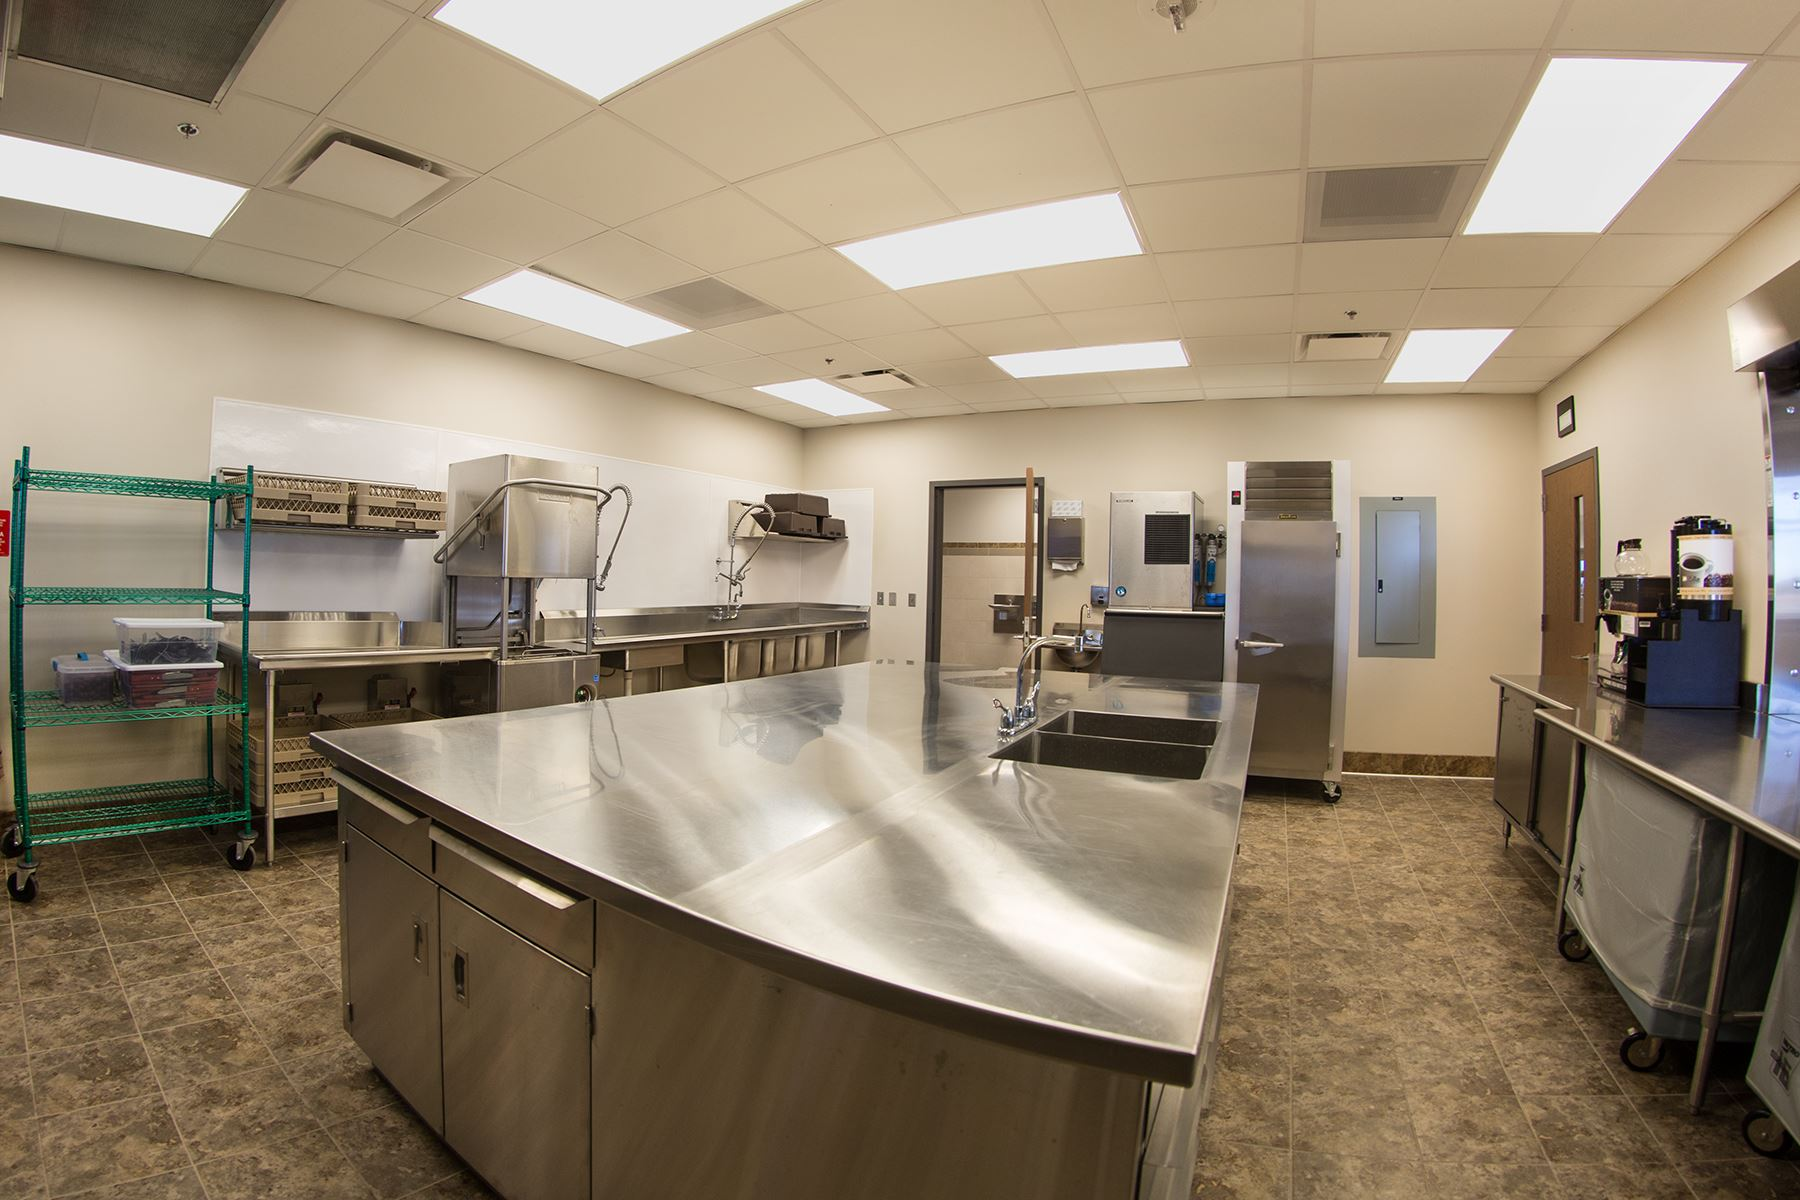 Different Angle of Kitchen of Stastny Community Center